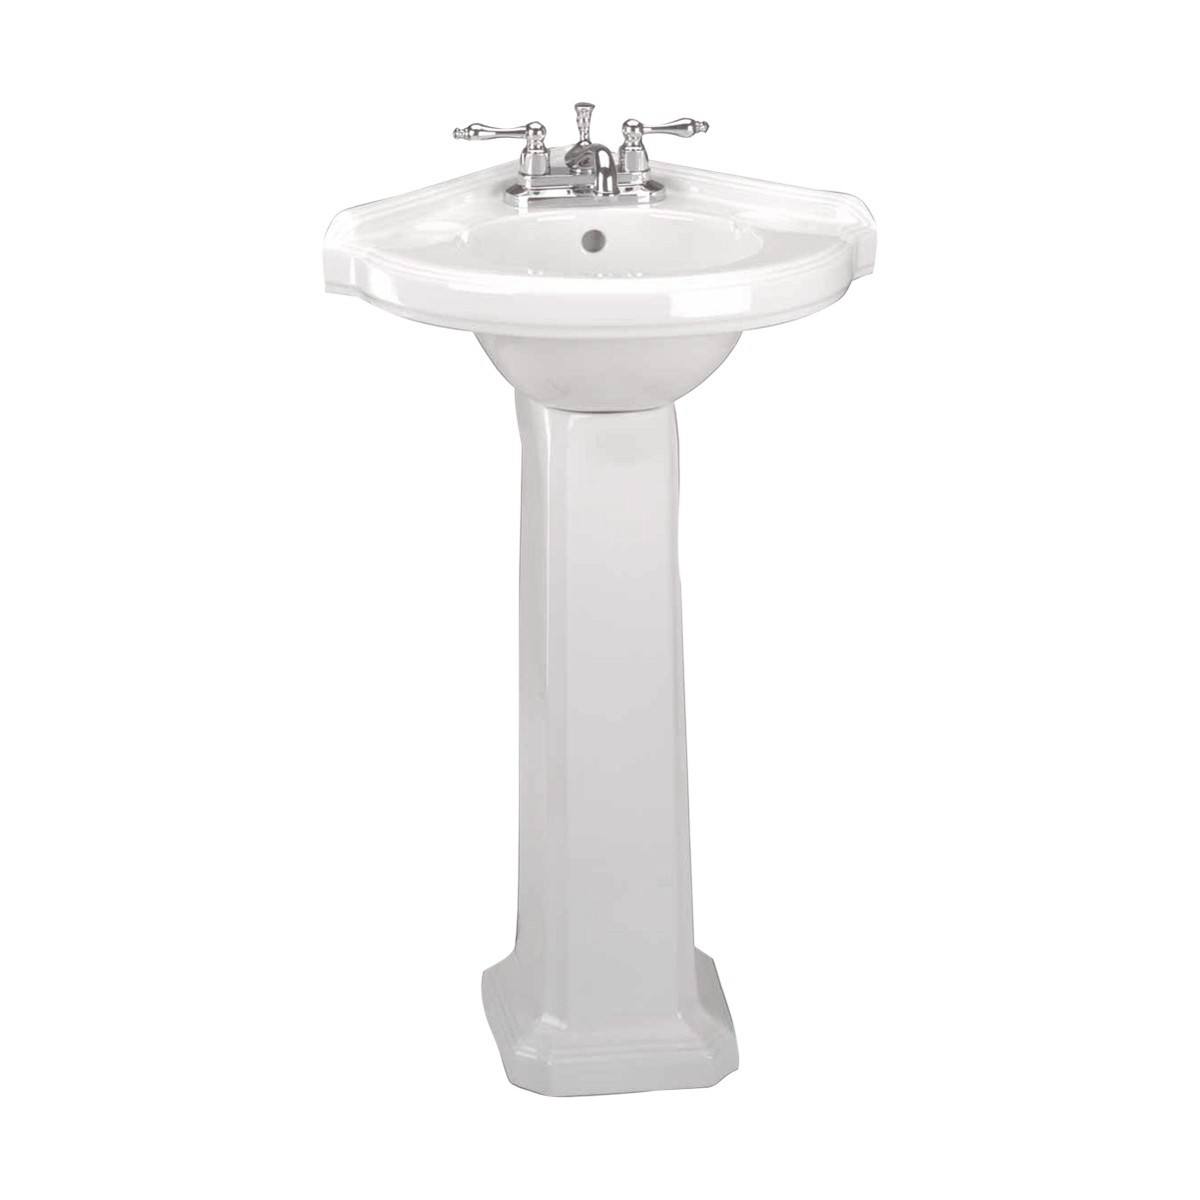 Short Pedestal Sink : Corner Pedestal Sink White Pedestal Sink Renovators Supply